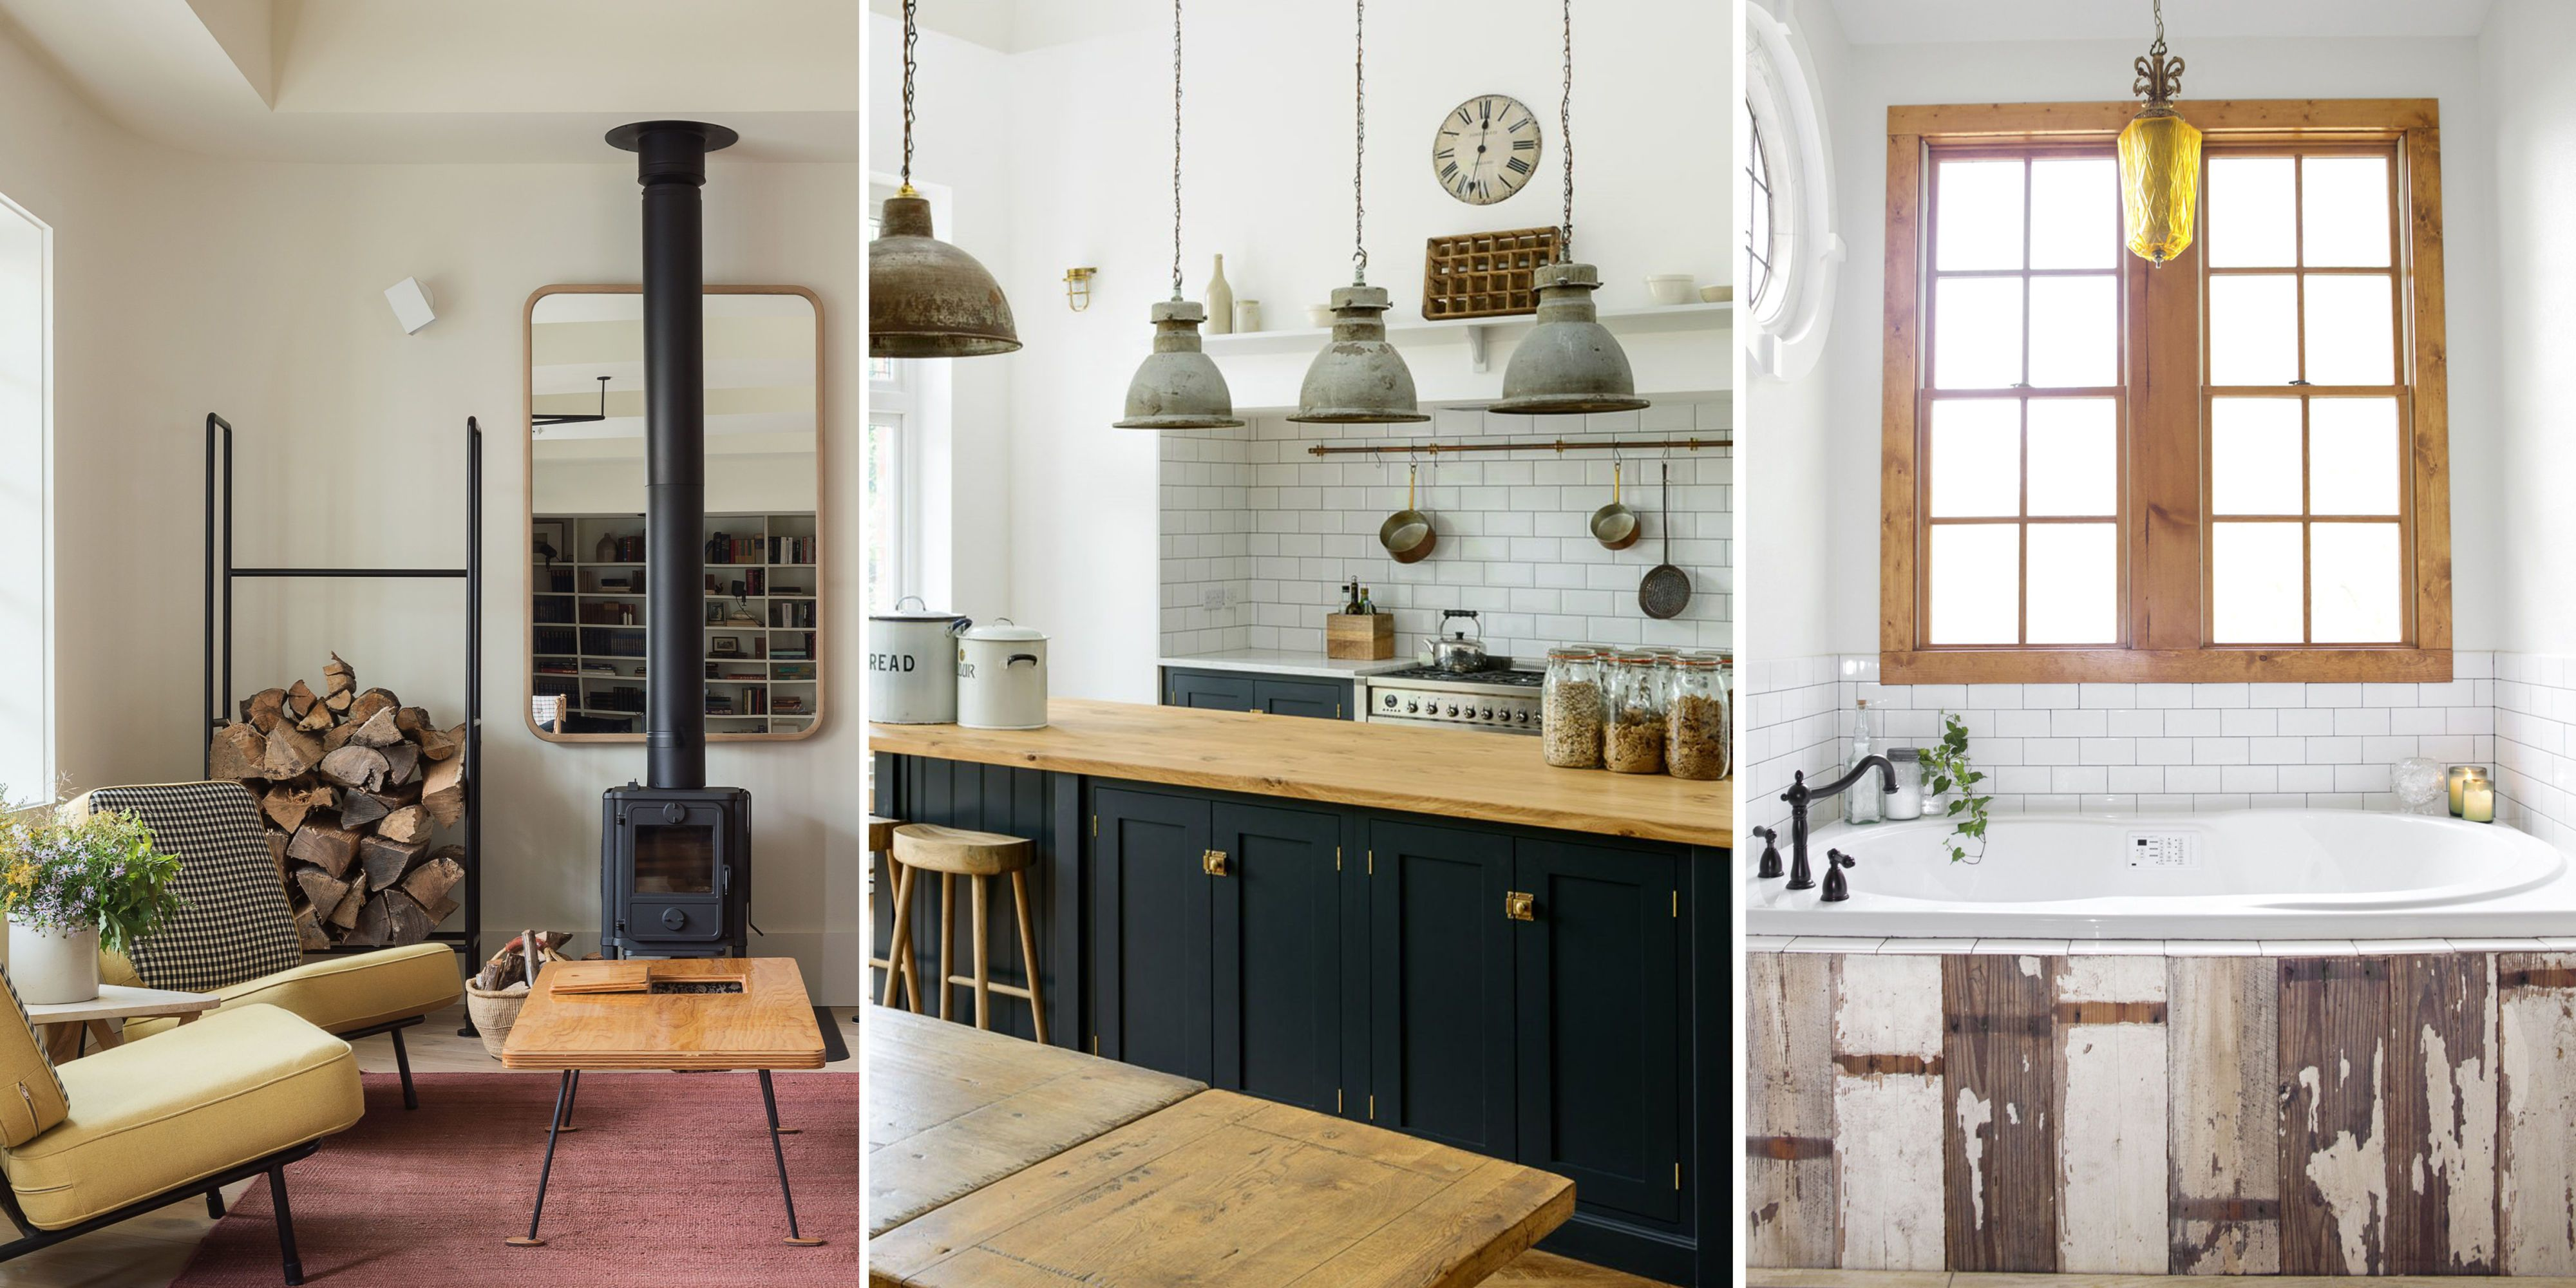 Rustic-kitchen-images &